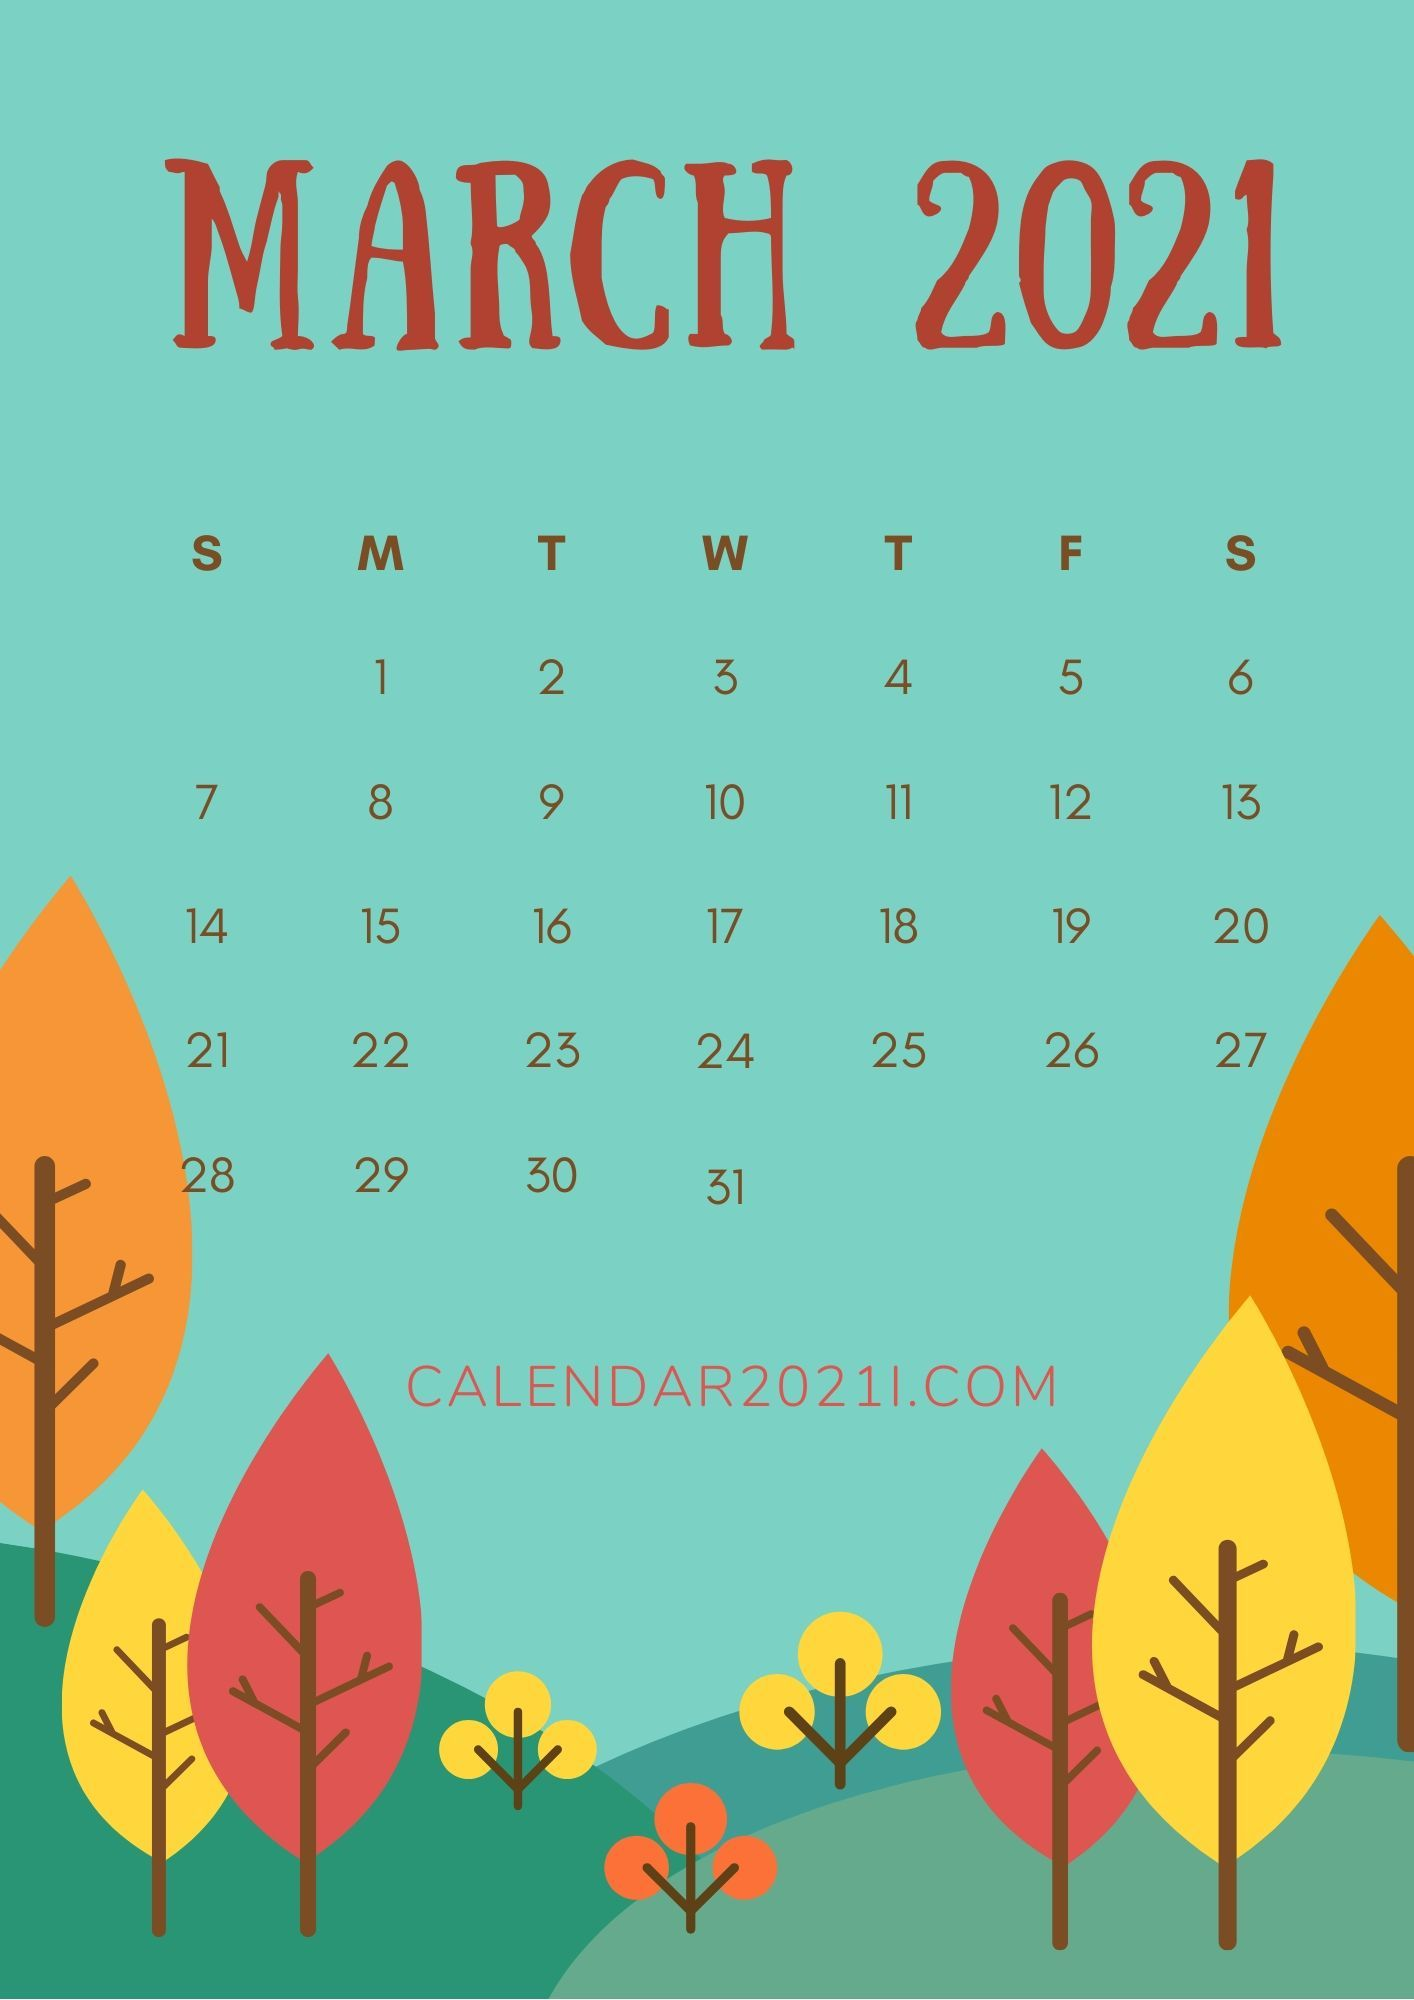 March 2021 Calendar iPhone HD Wallpaper for mobiles background in 1414x2000